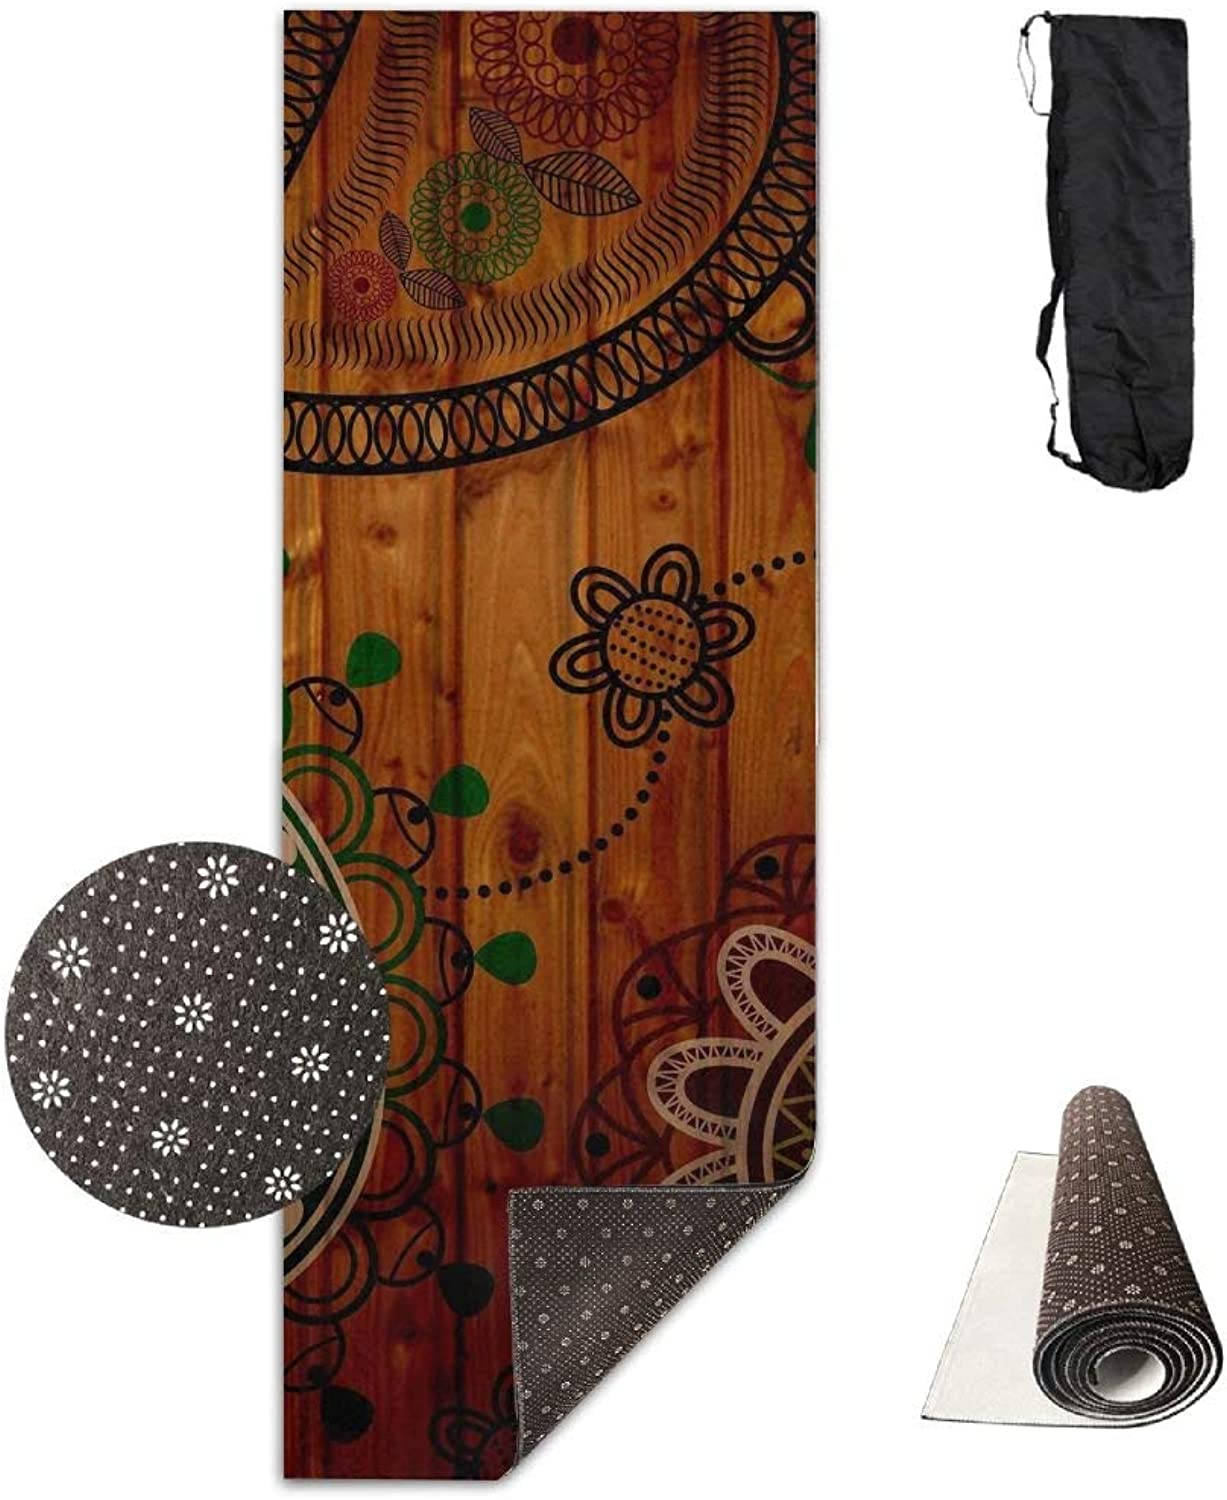 Classical Wooden Paisley Premium Print Durable Concise Fun Printing Yoga Mat for Yoga, Workout, Fitness